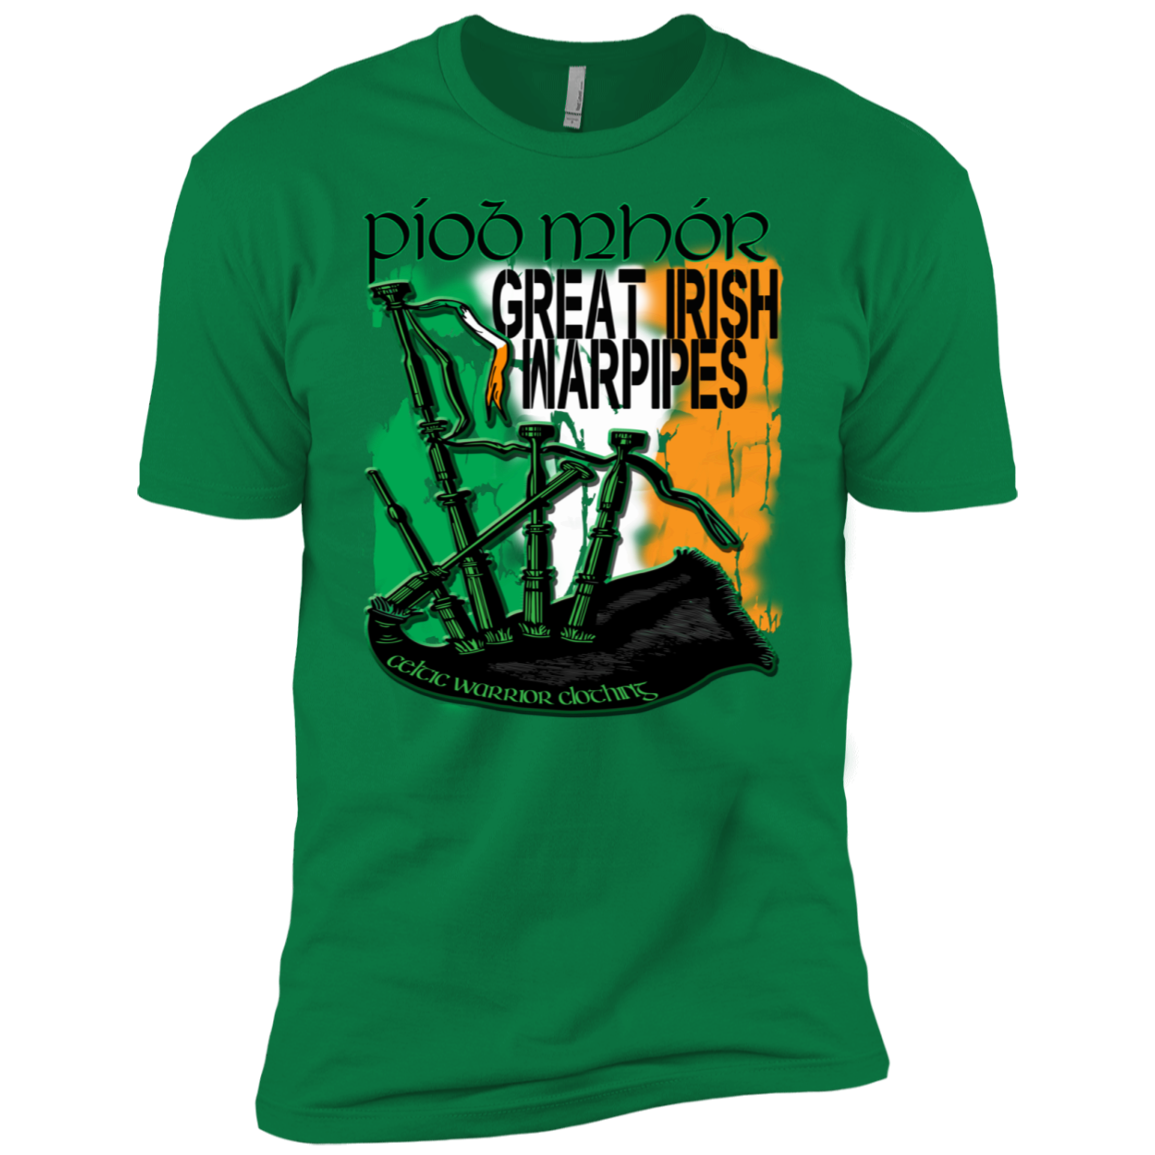 Celtic Warrior - Warpipe T-Shirt